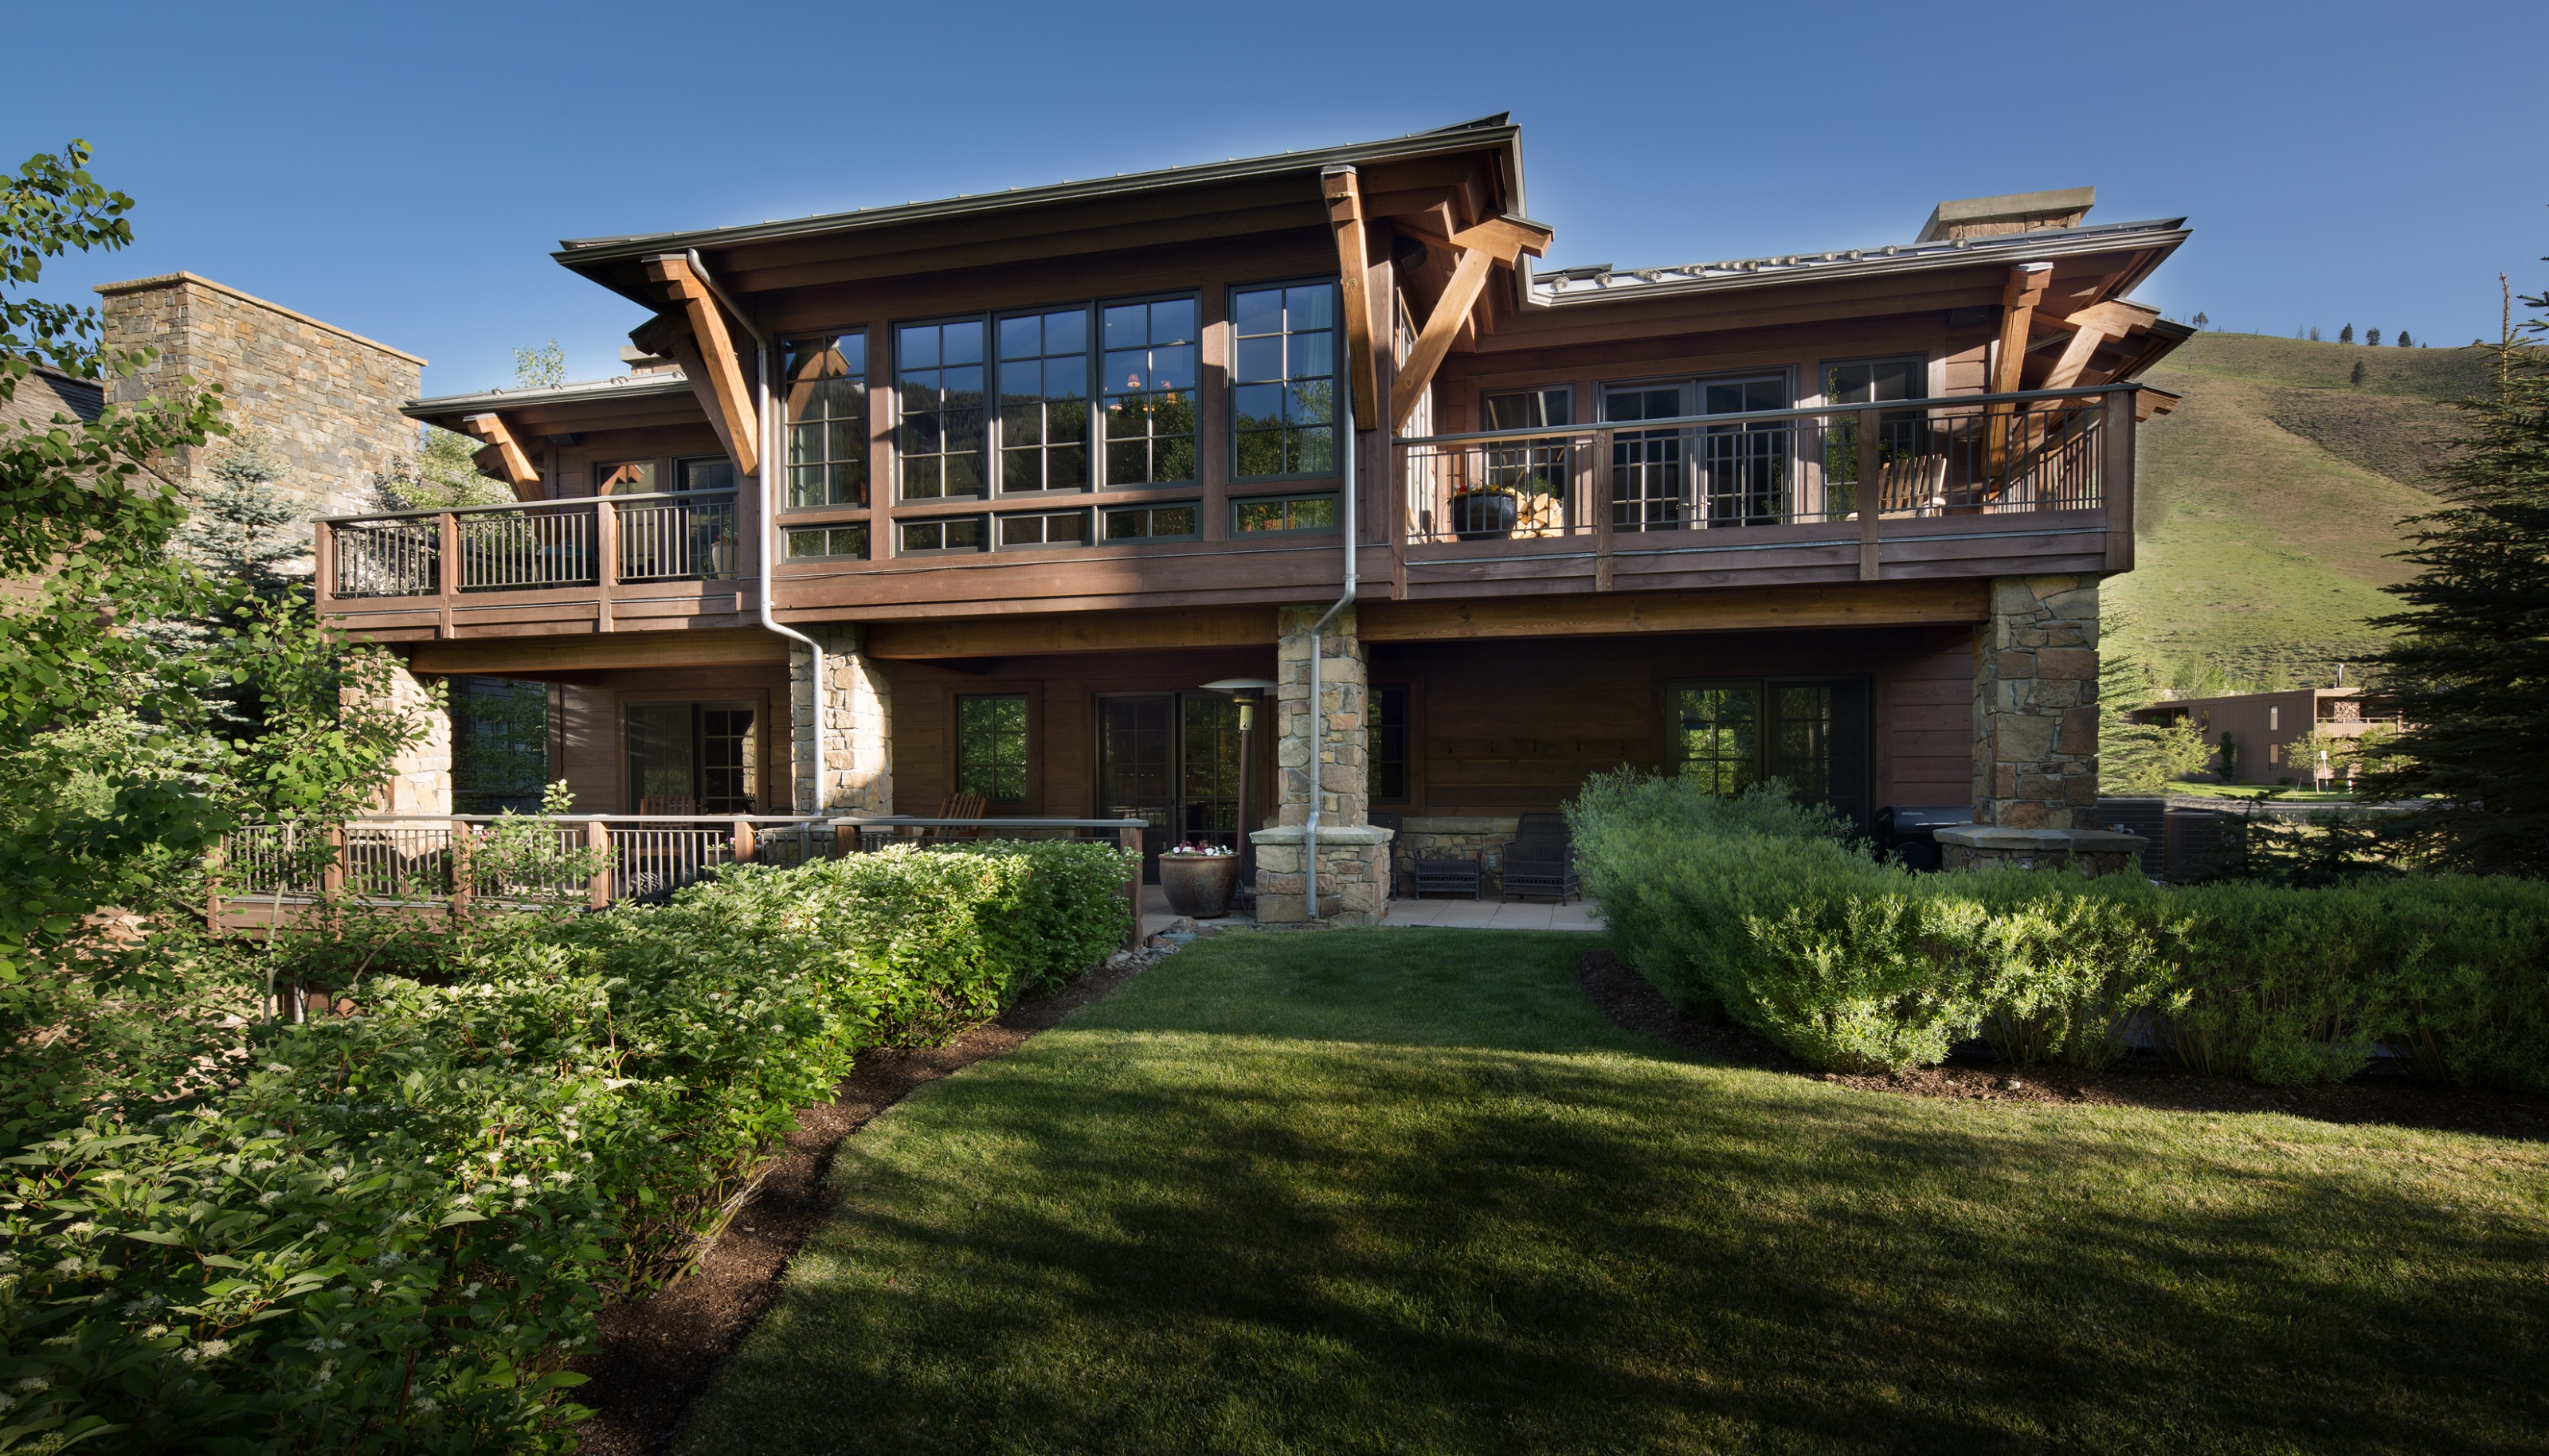 Casa Unifamiliar por un Venta en Luxurious Ski Retreat 119 Ritchie Dr. Ketchum, Idaho 83340 Estados Unidos